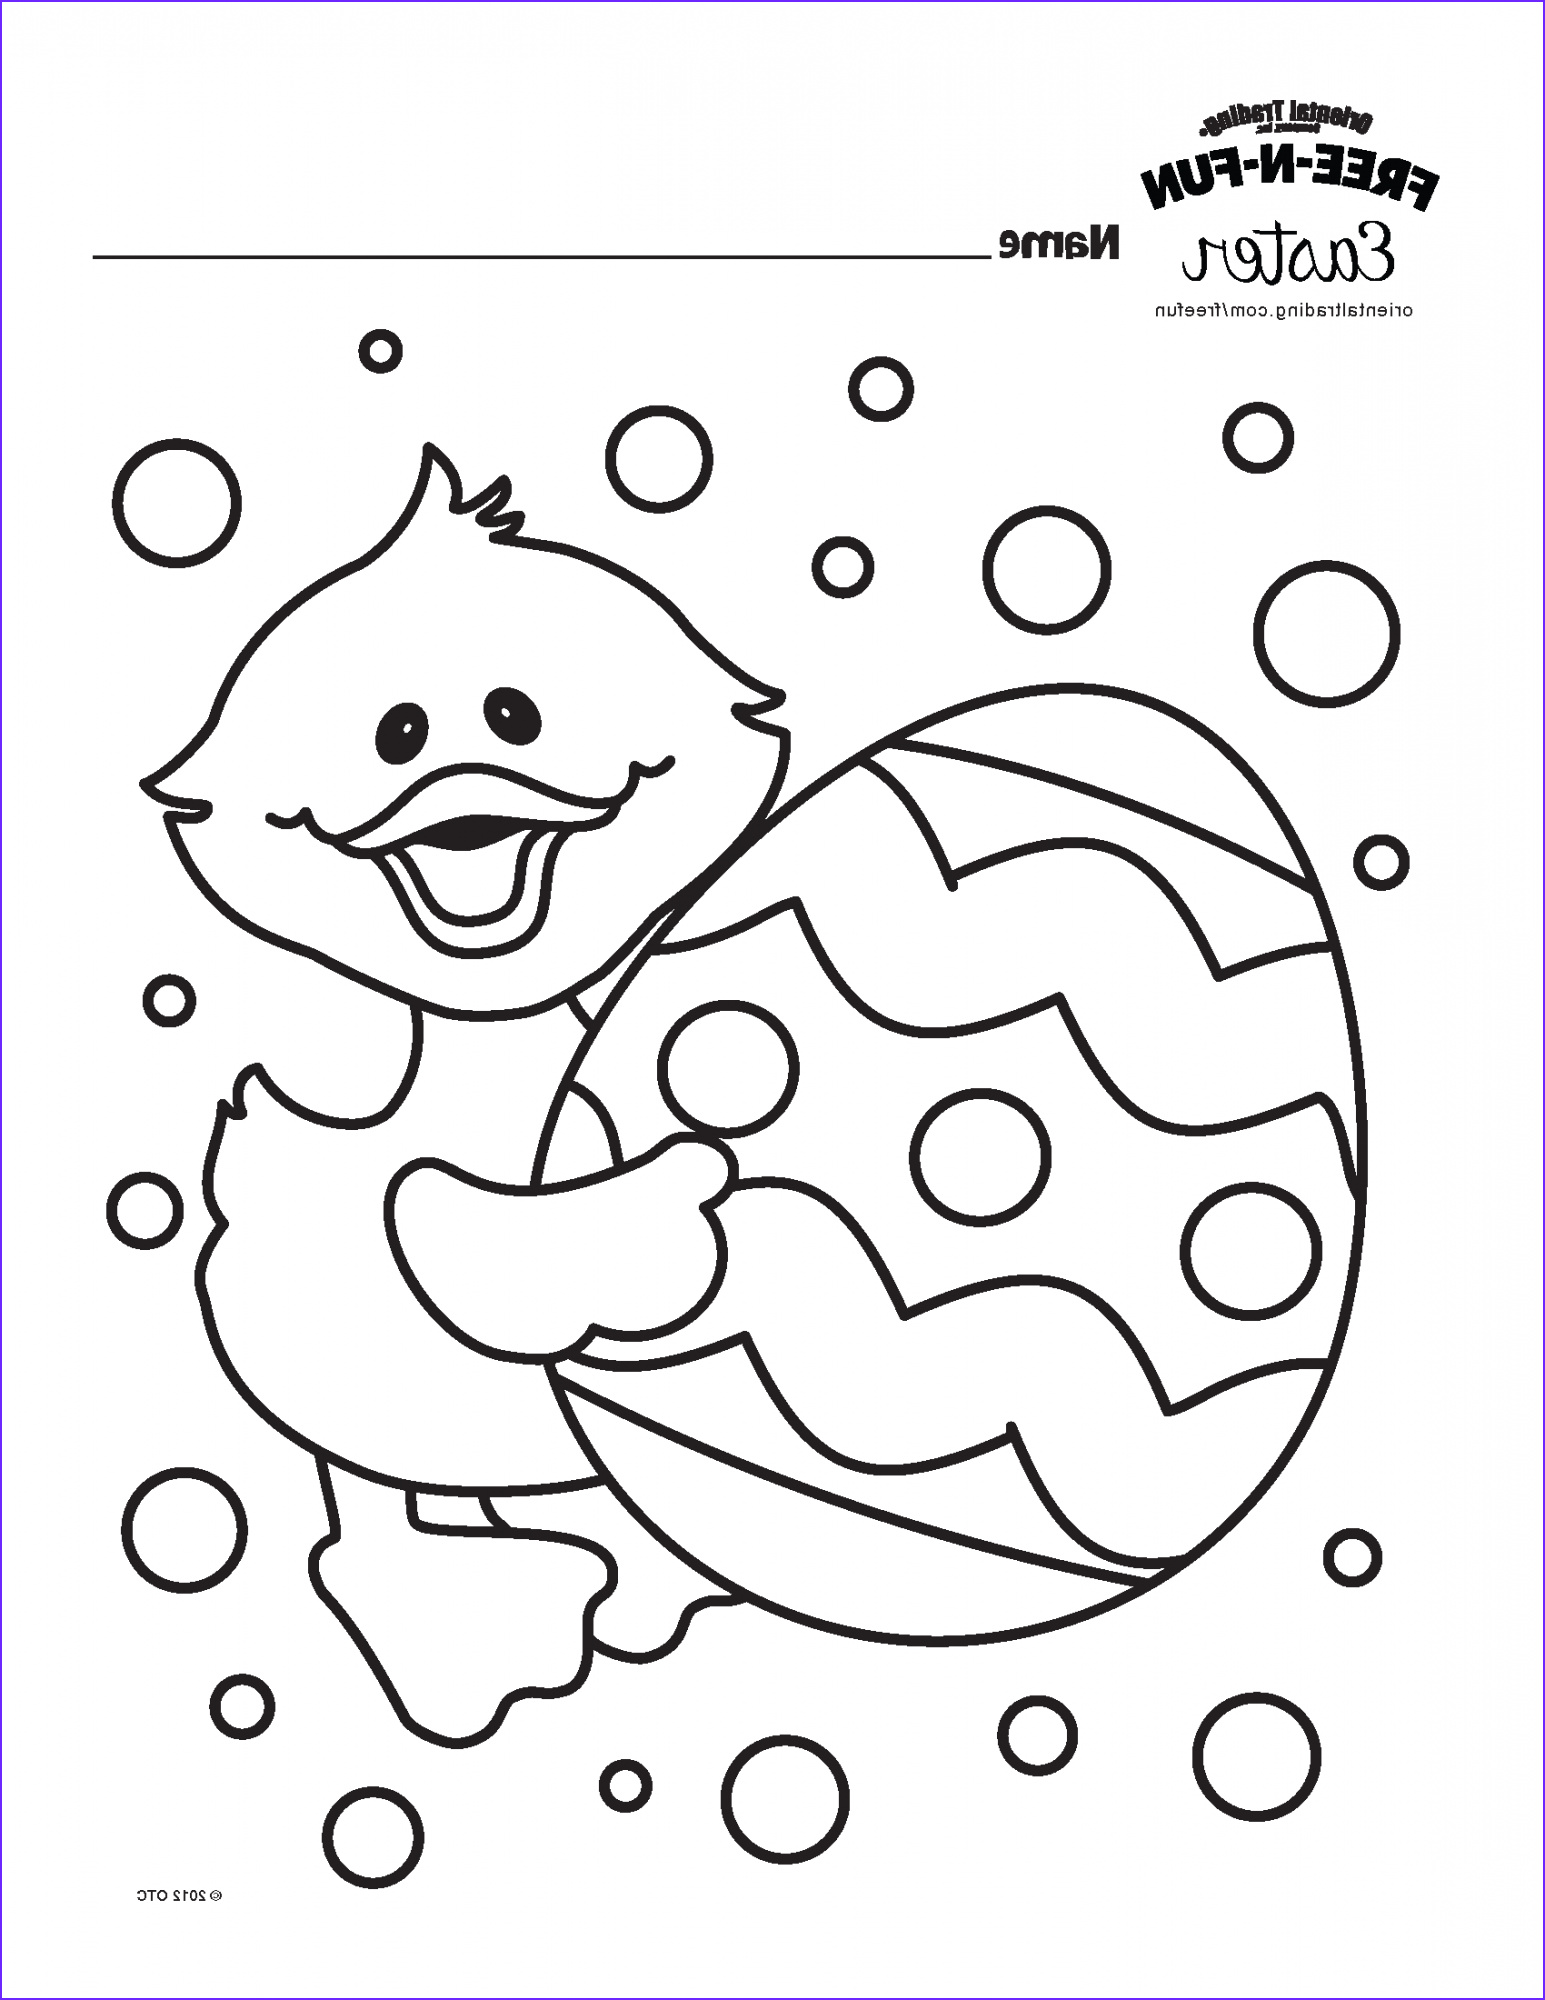 Easter Coloring Images Elegant Photos Kids Easter Coloring Contest Staffing Partners Ohio